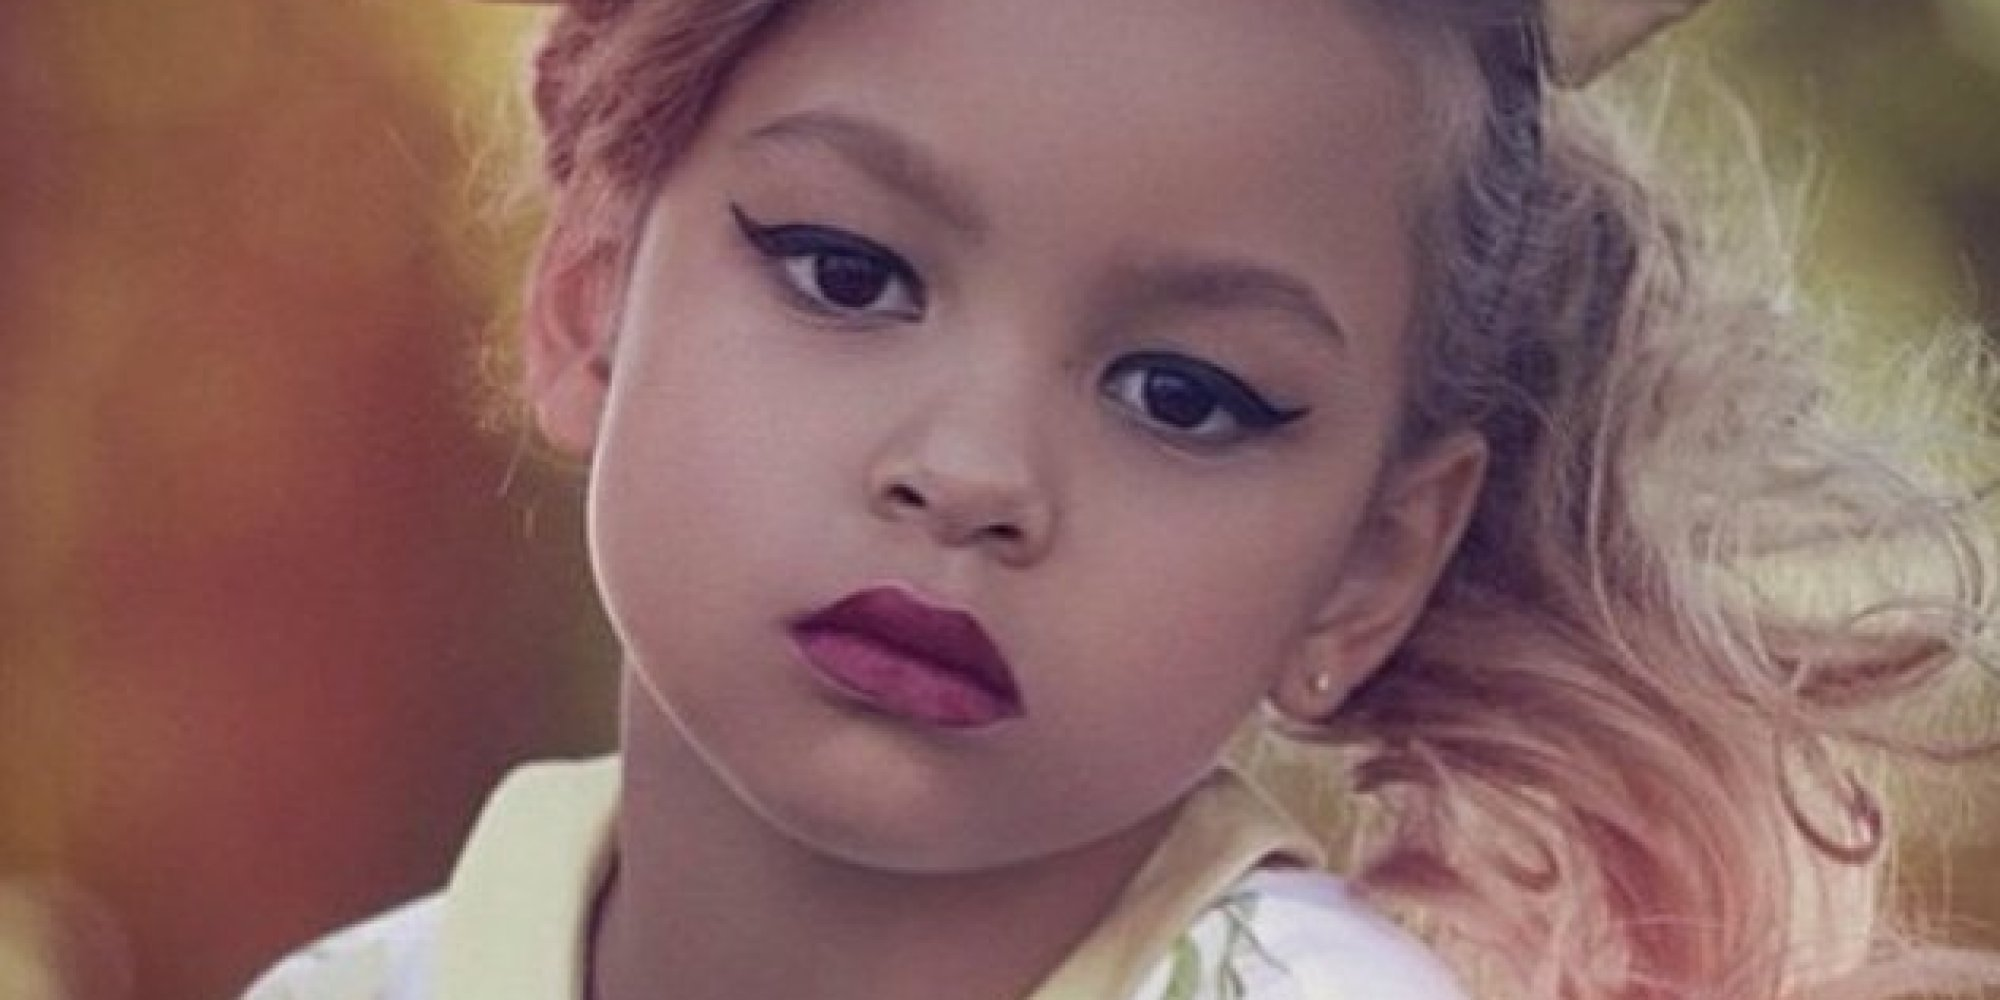 Image result for little girl with makeup